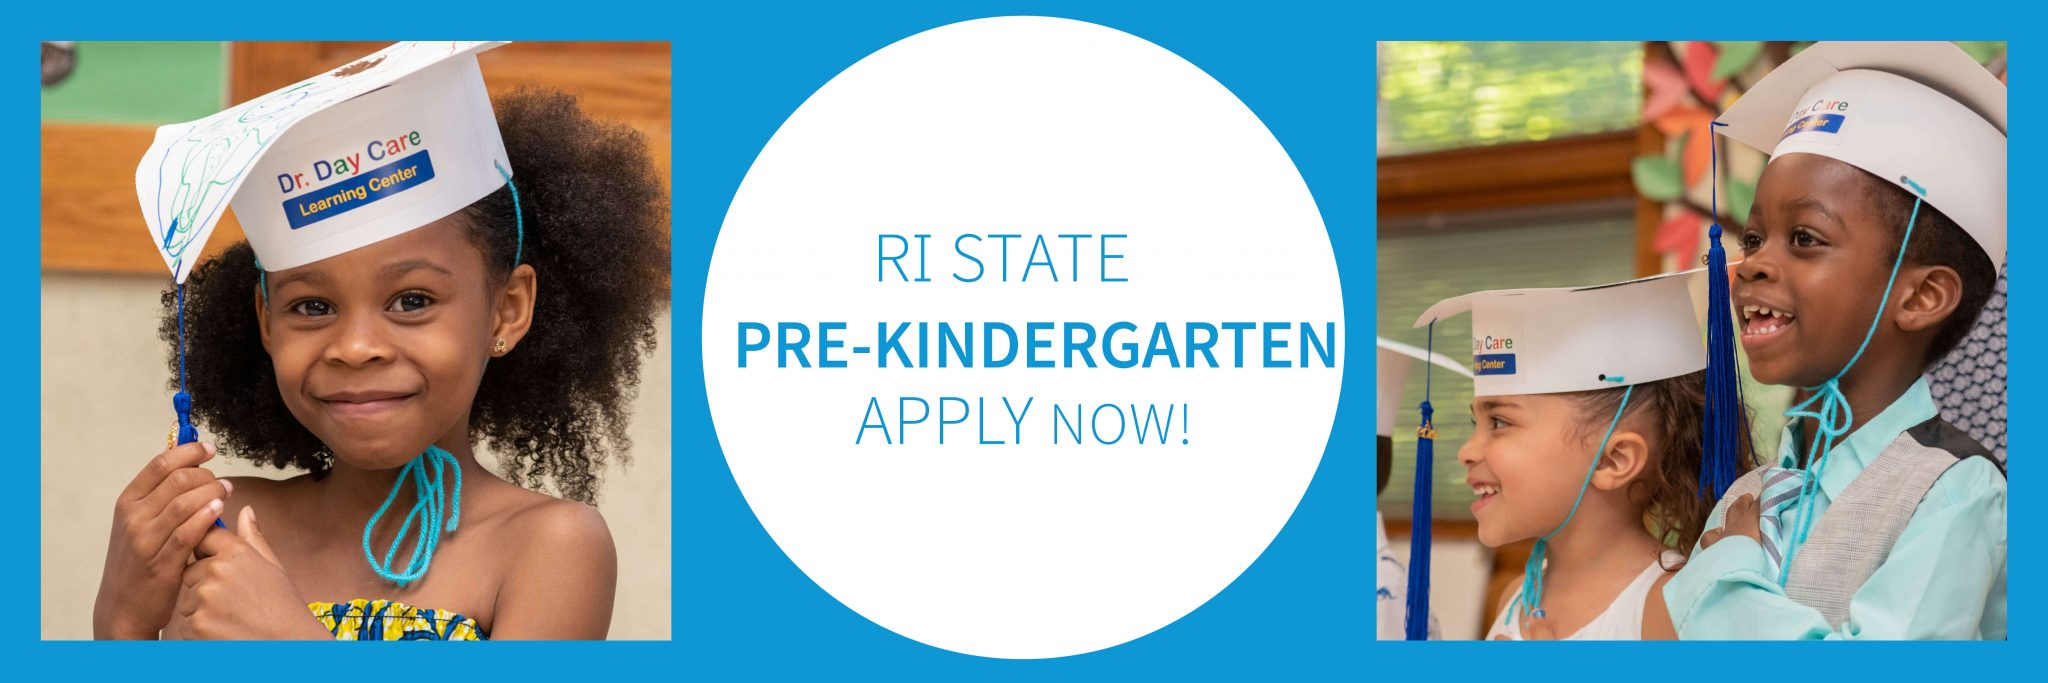 2021-2022 RI State Pre-K Lottery is open at Dr. Day Care